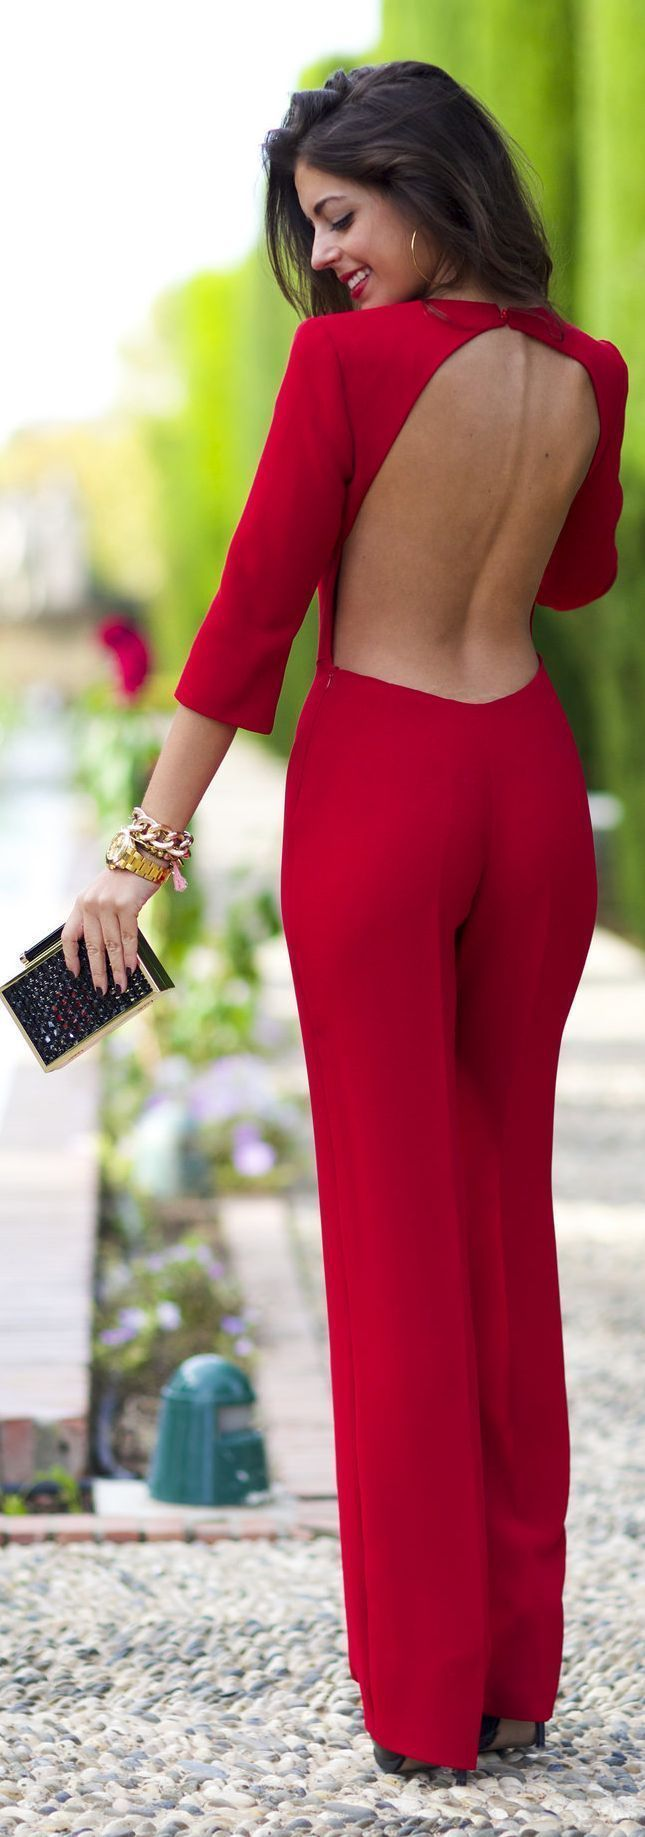 Welcoming February With Red Outfits 60 Inspirations